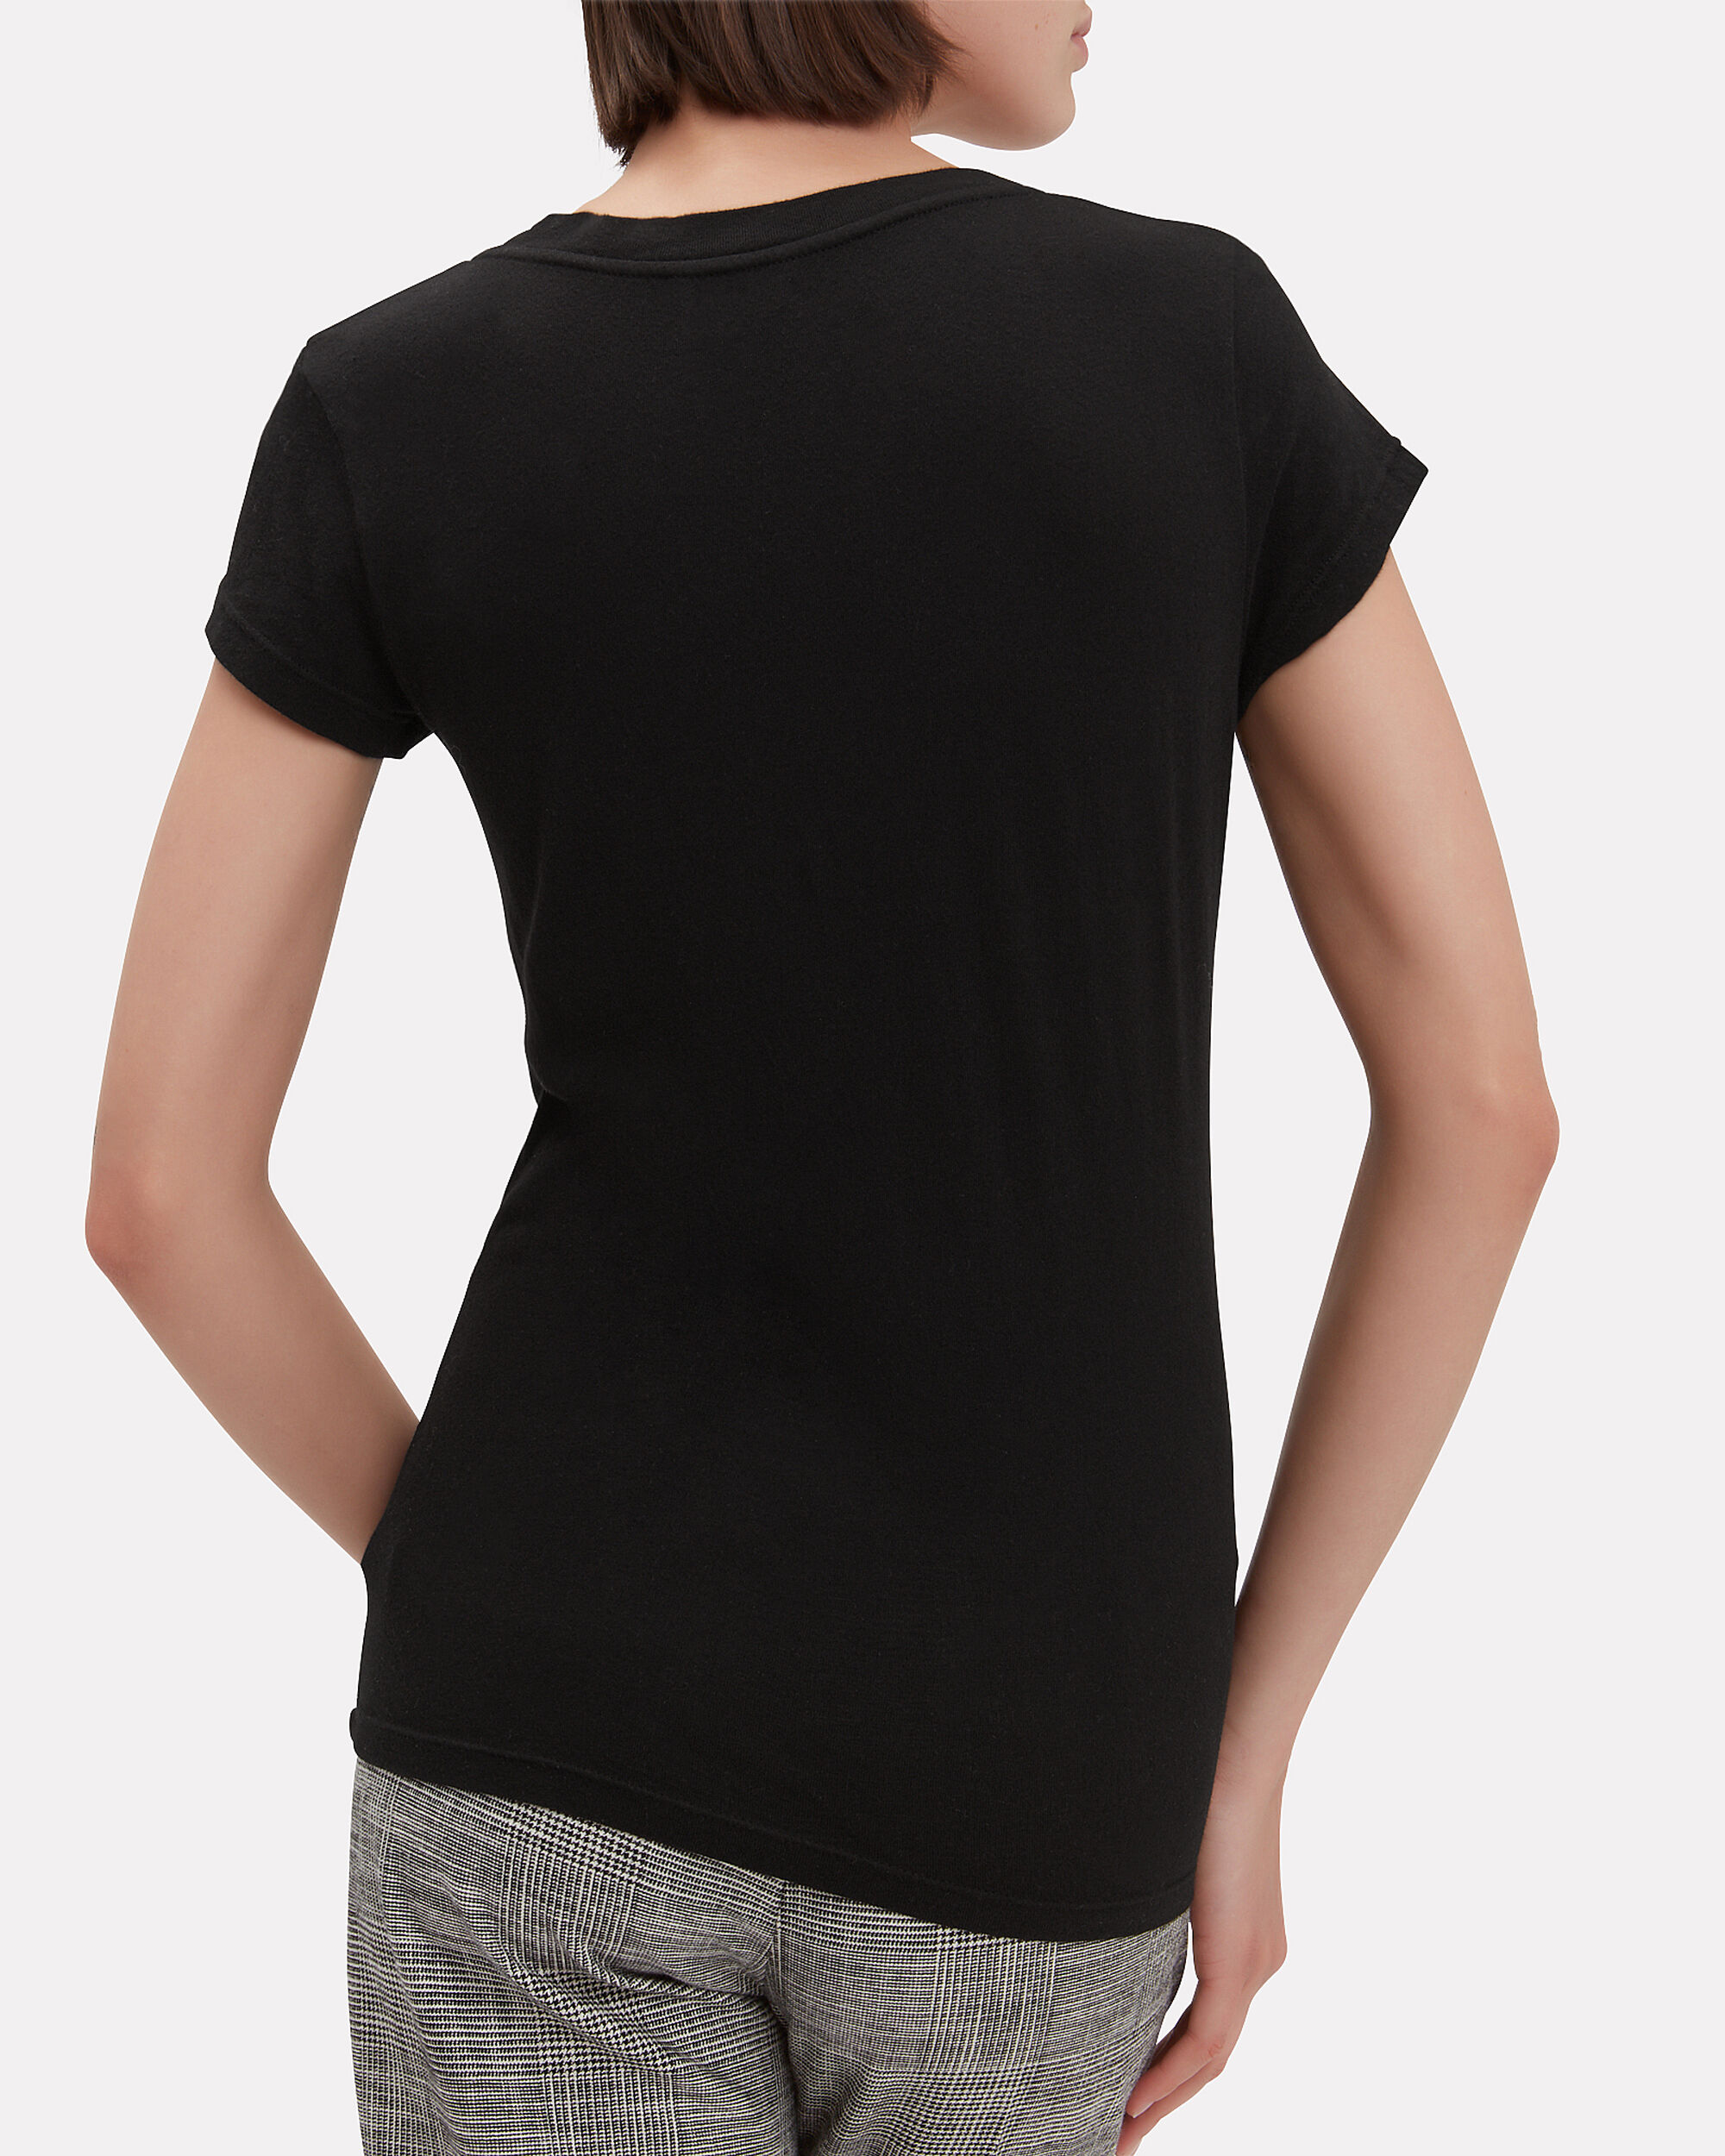 Becca Black T-Shirt, BLACK, hi-res